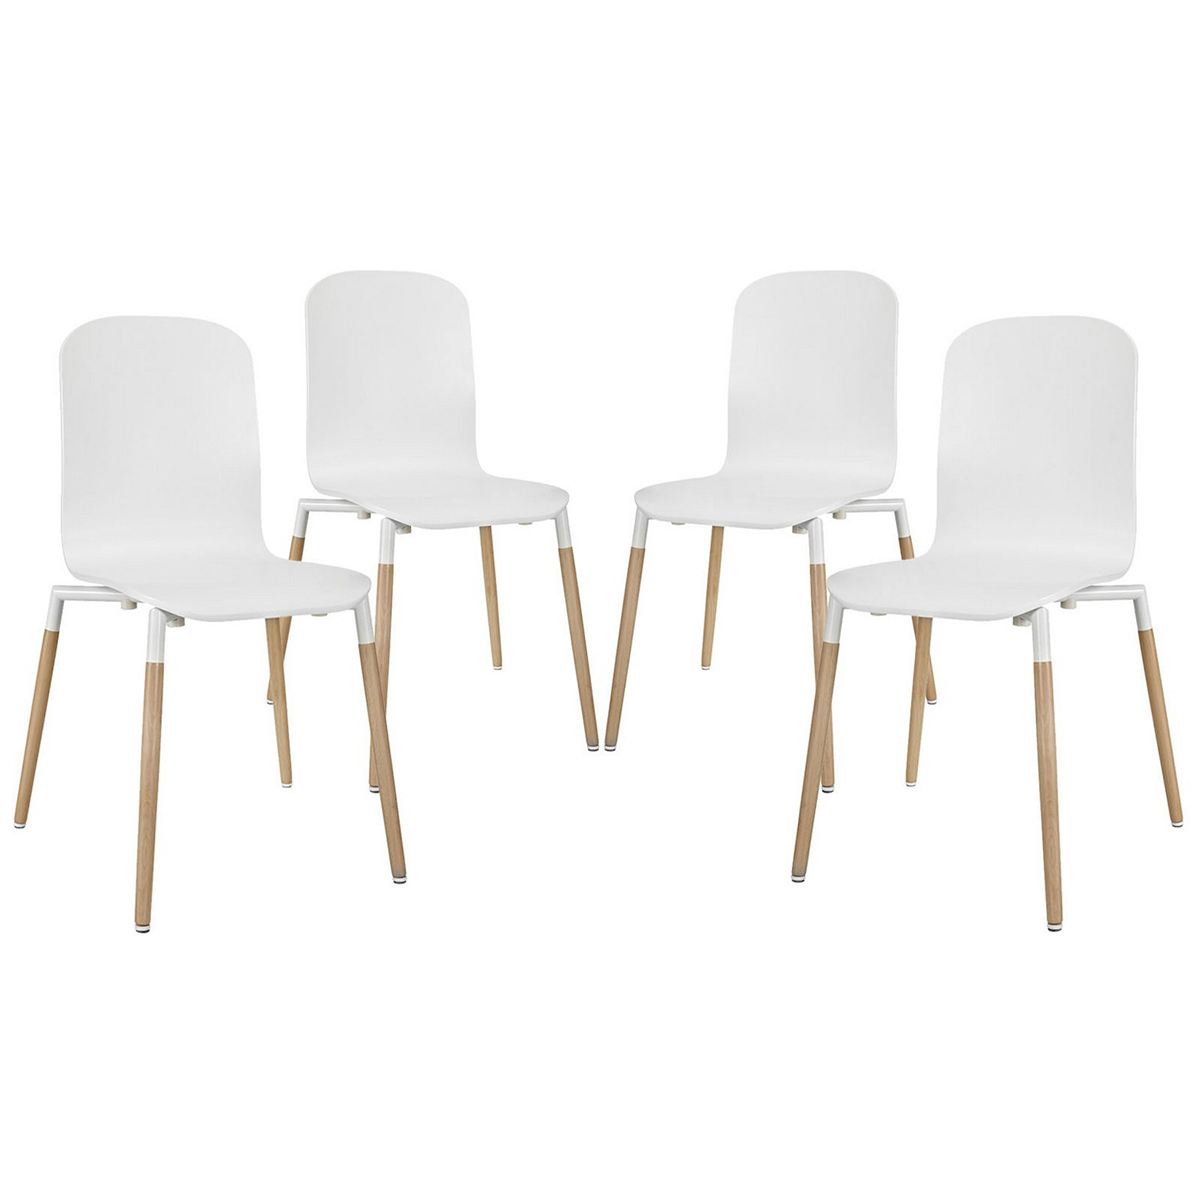 Modway Stack 4PC Dining Chairs Wood Set - White